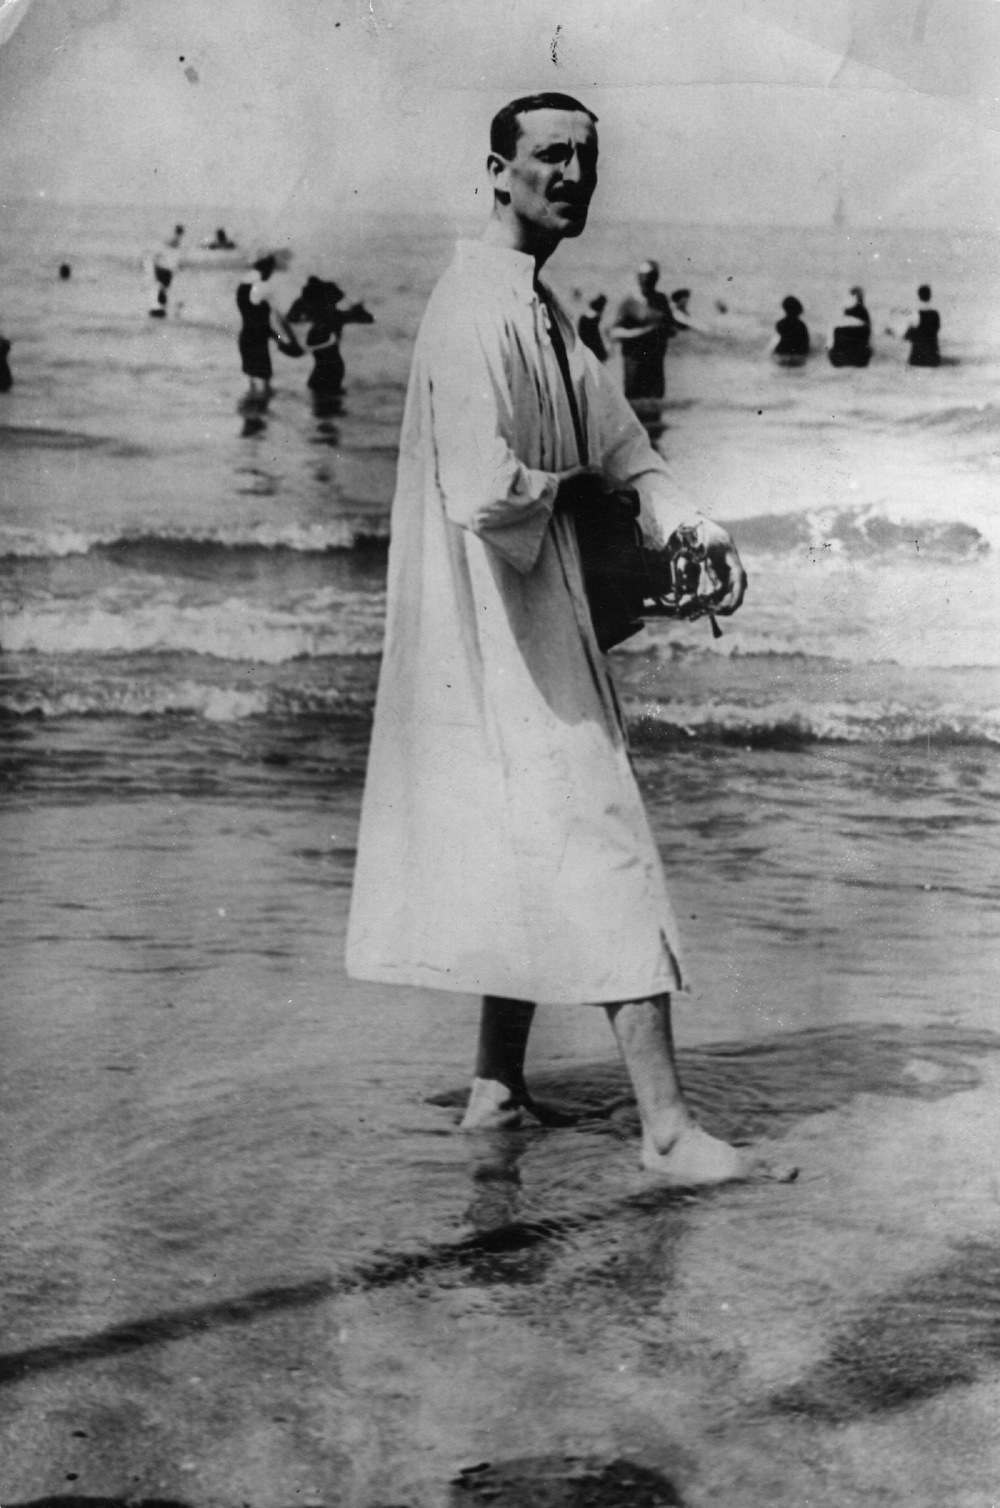 Victorian Era Beach Life: 52 Photos of Lust, Love And Lace